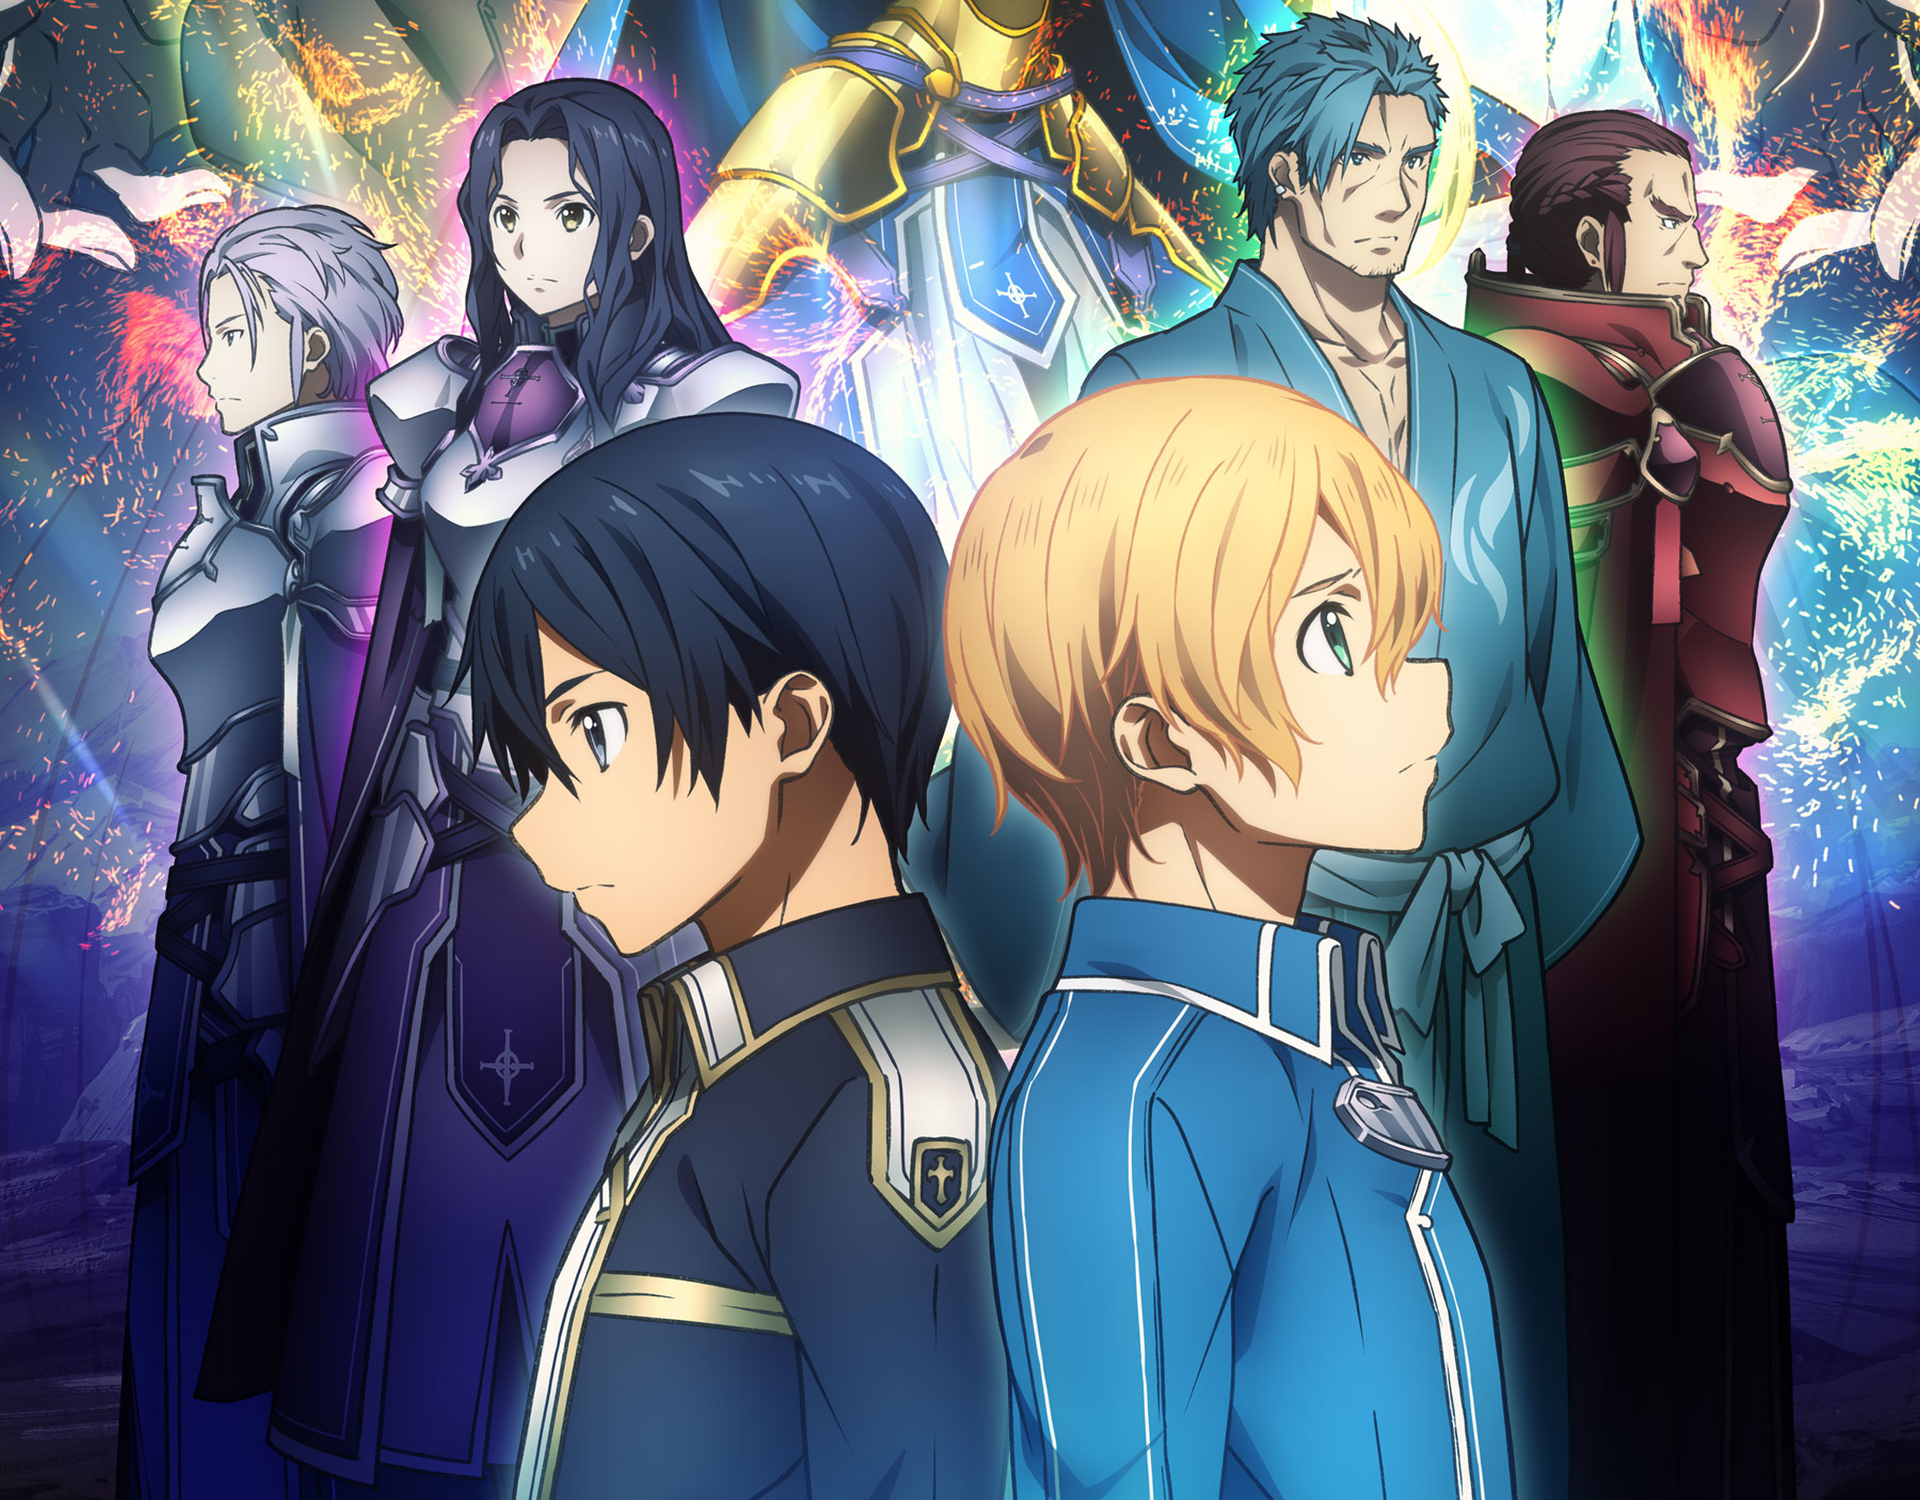 Sword Art Online Alicization Wallpapers In 2020 Sword Art Online Sword Art Online Wallpaper Sword Art